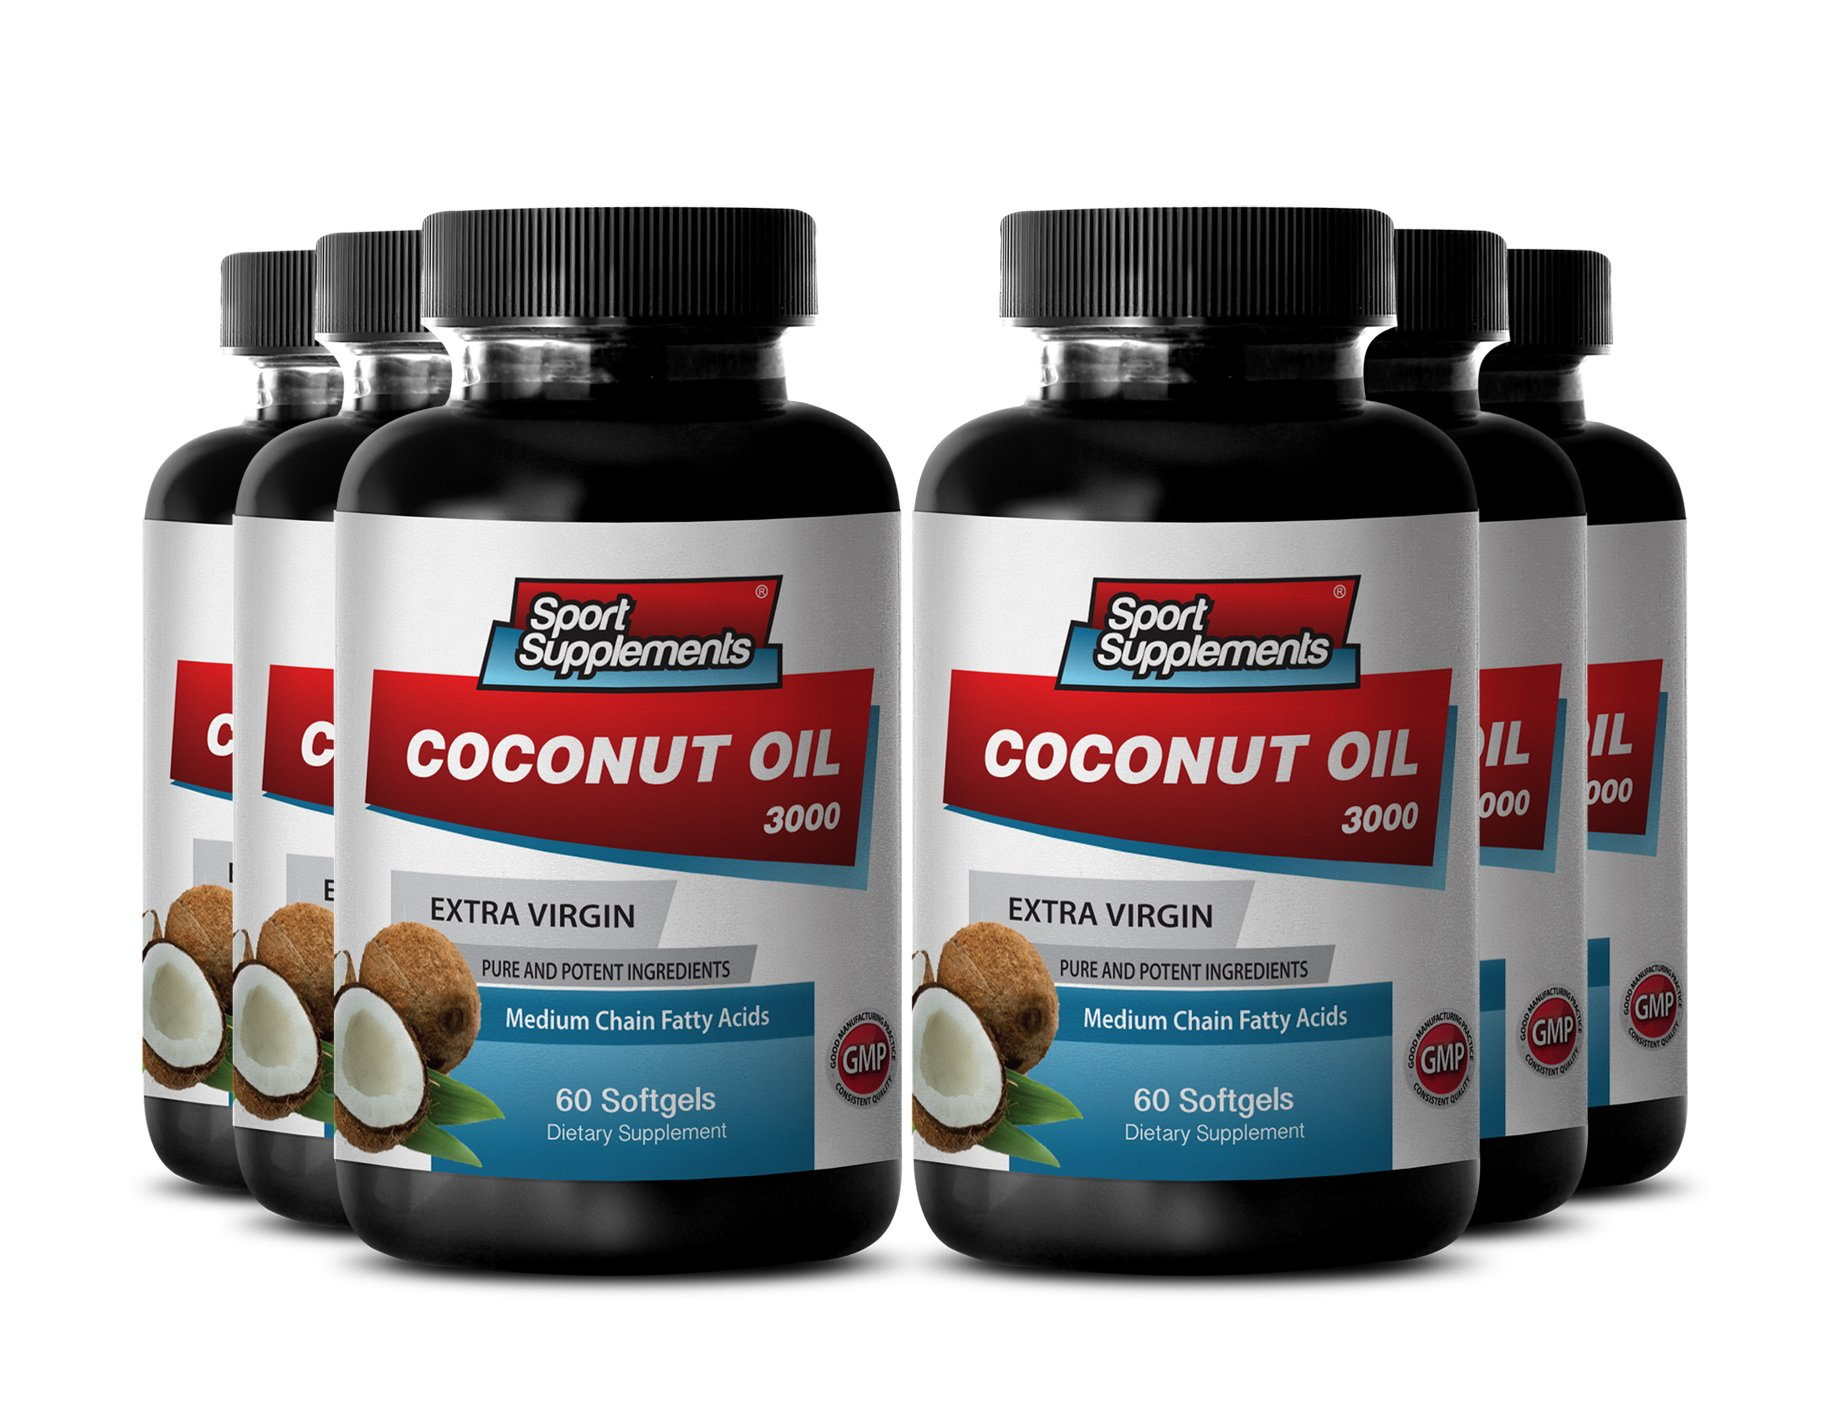 Extra Virgin Coconut Oil Cold Pressed Unrefined - Extra Virgin Coconut Oil 3,000mg - Coconut Oil for Skin, Nails and Hair Care (6 Bottles 360 Softgels)